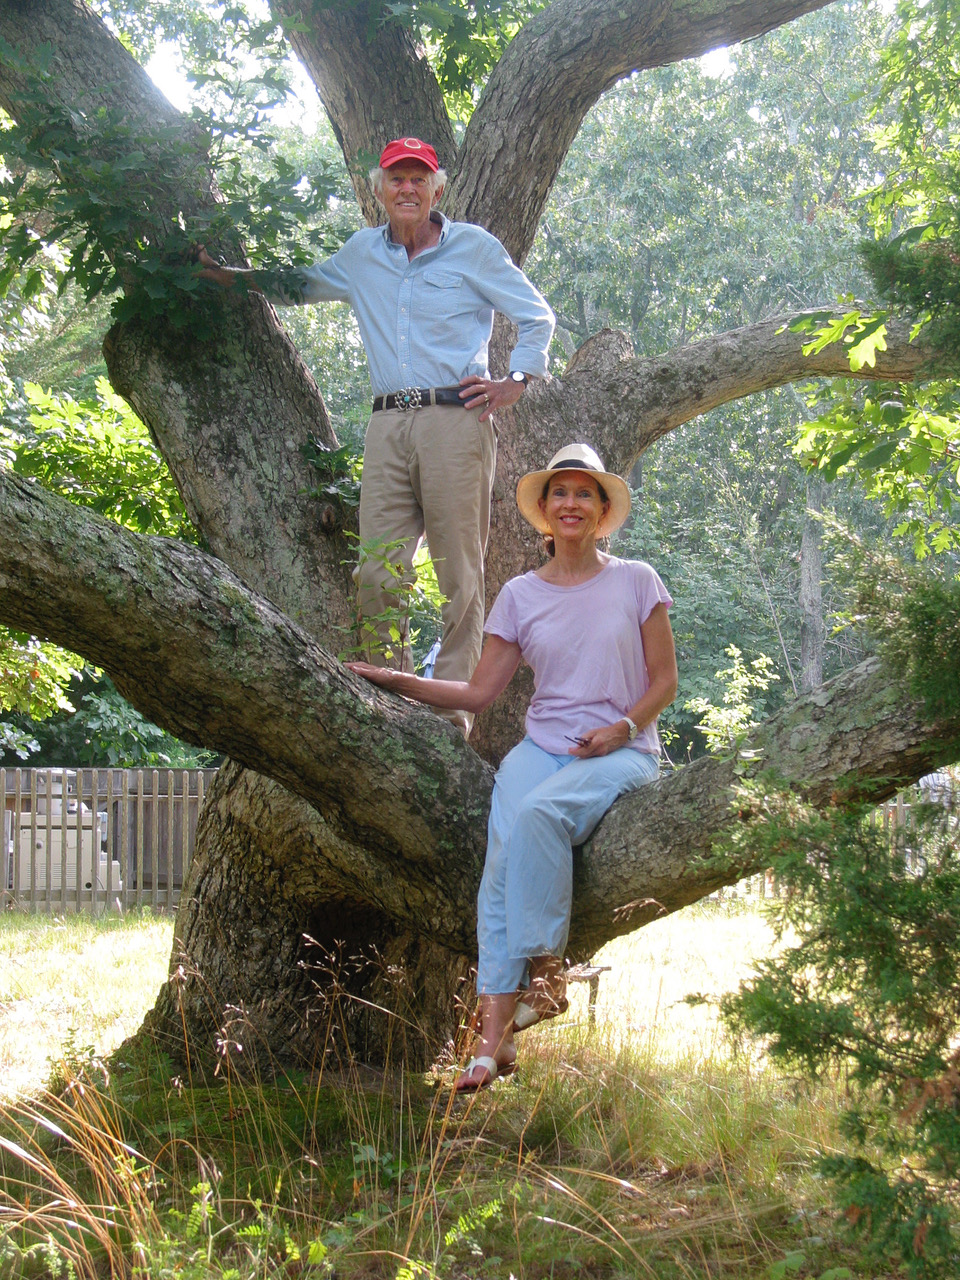 Jeanie and David Stiles in tree- high res